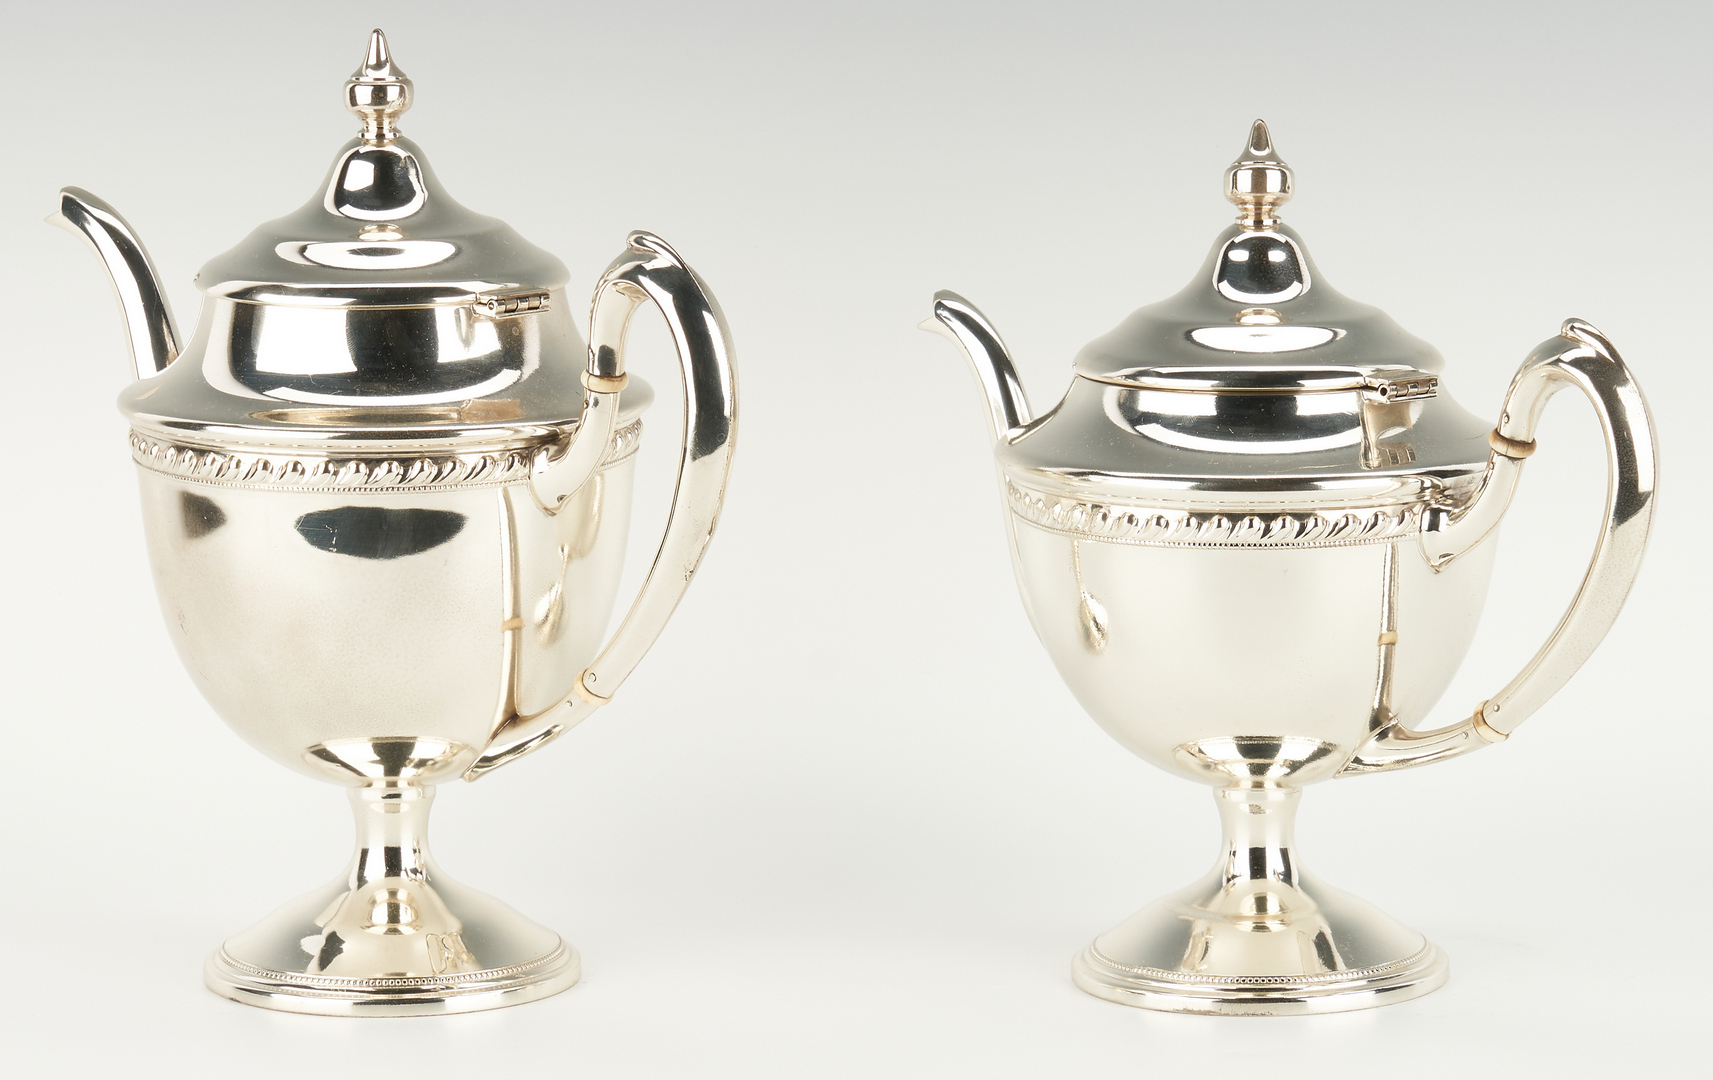 Lot 287: 5 pc. Reed & Barton Sterling Tea Set w/ SP Kettle and Tray